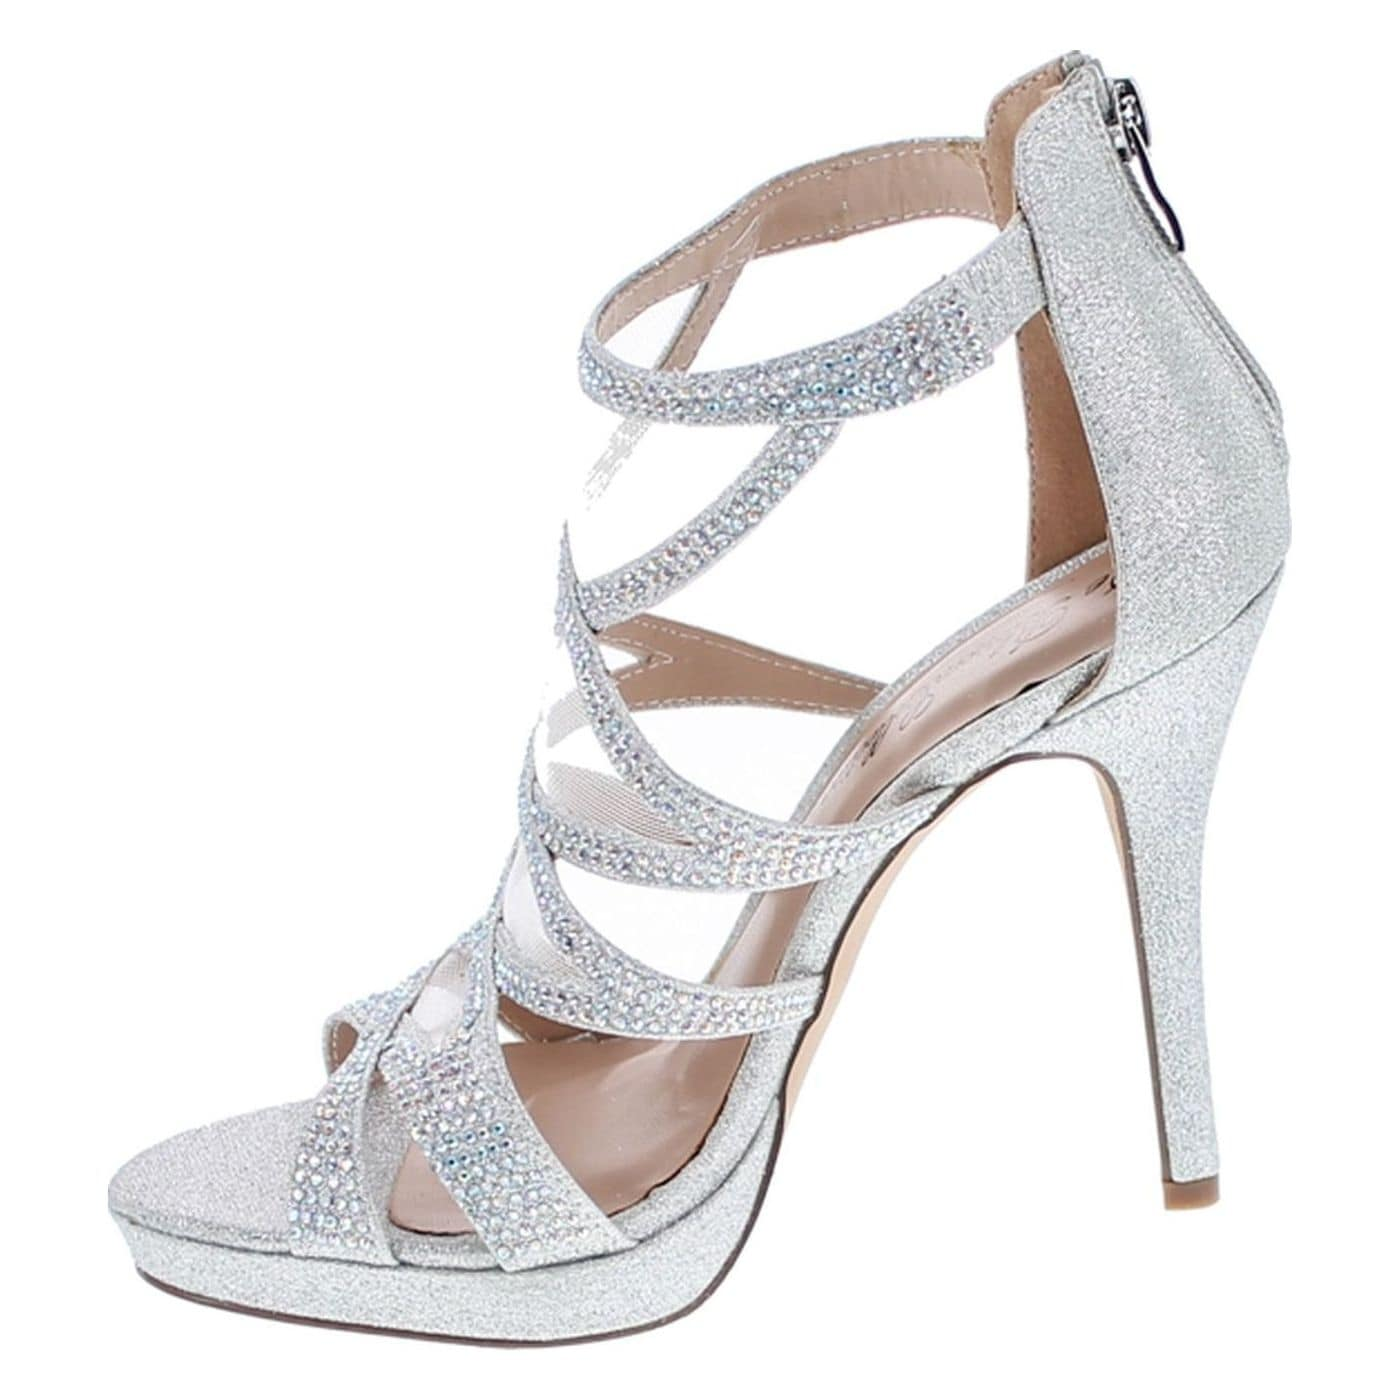 3e03e1549 Shop De Blossom Marna-28 Open Toe Sexy Stiletto High Heel Sandals For  Wedding Bridal Party Prom Dress - Silver - Free Shipping Today - Overstock  - 20908675